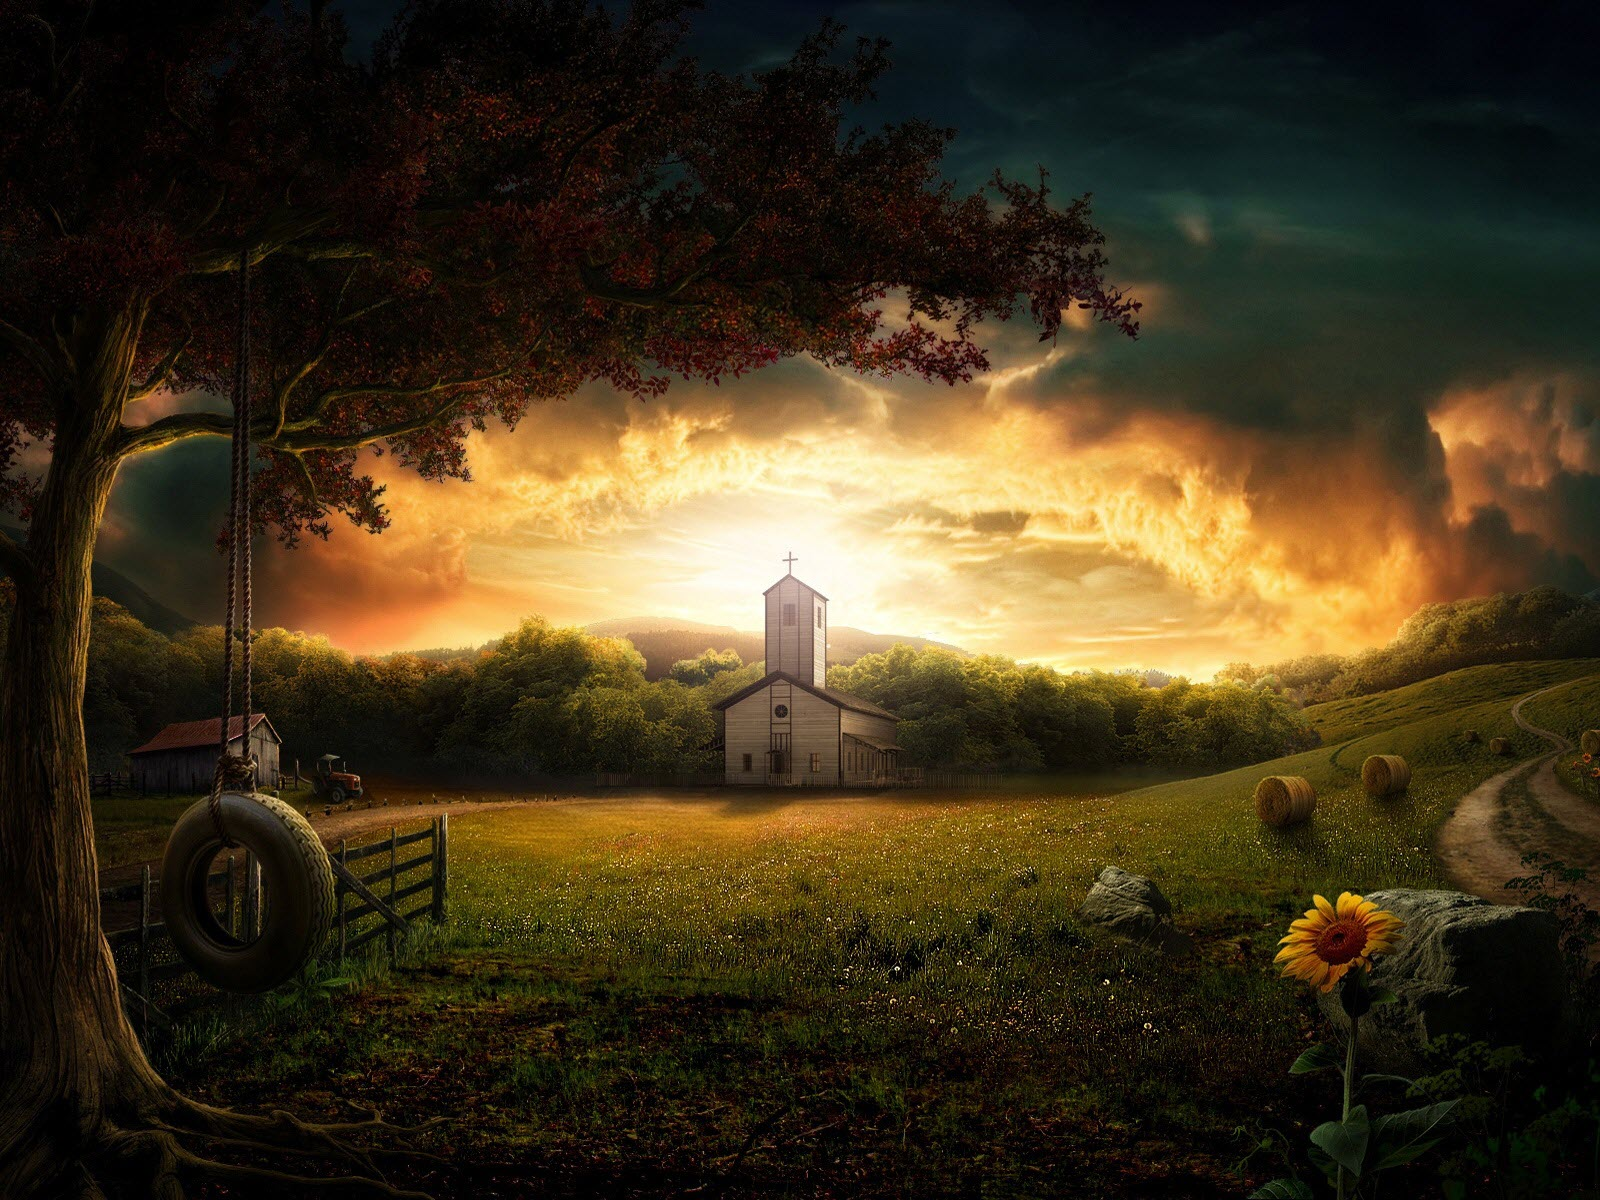 House of Dreams Wallpapers HD Wallpapers 1600x1200